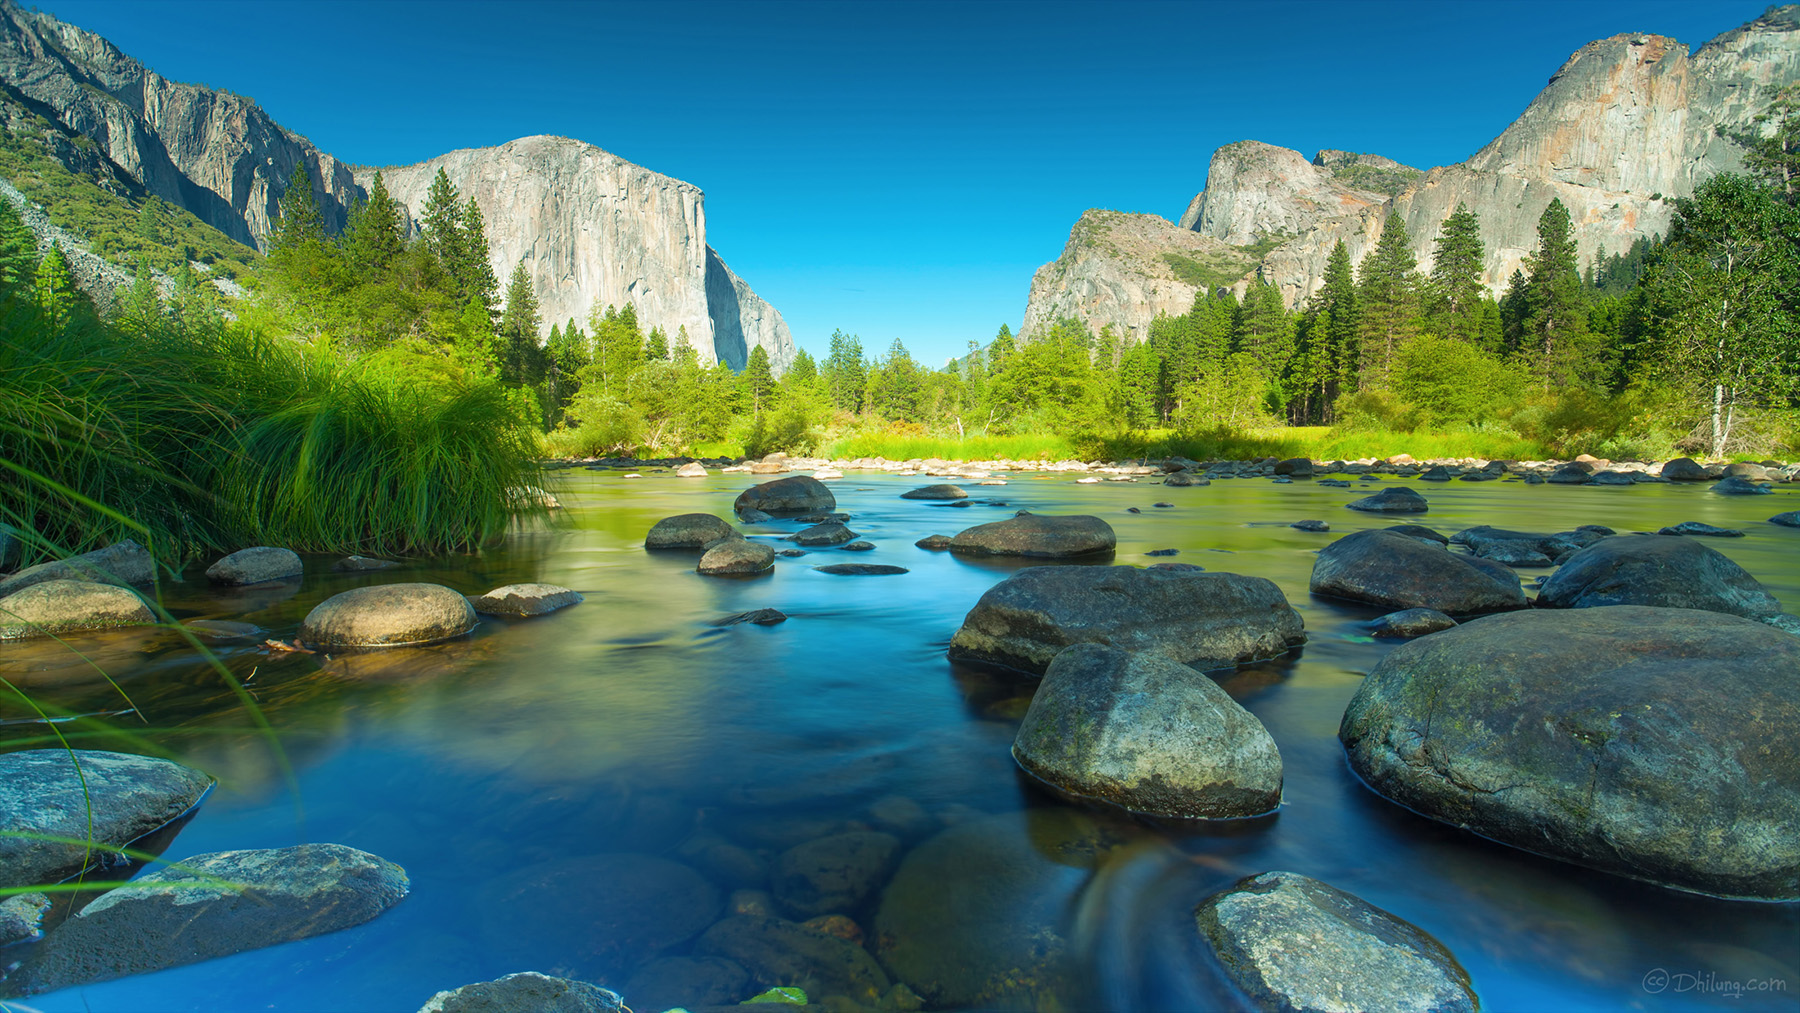 Yosemite Classic - The classic view of the El Capitan and the Merced river in the Yosemite National Park.